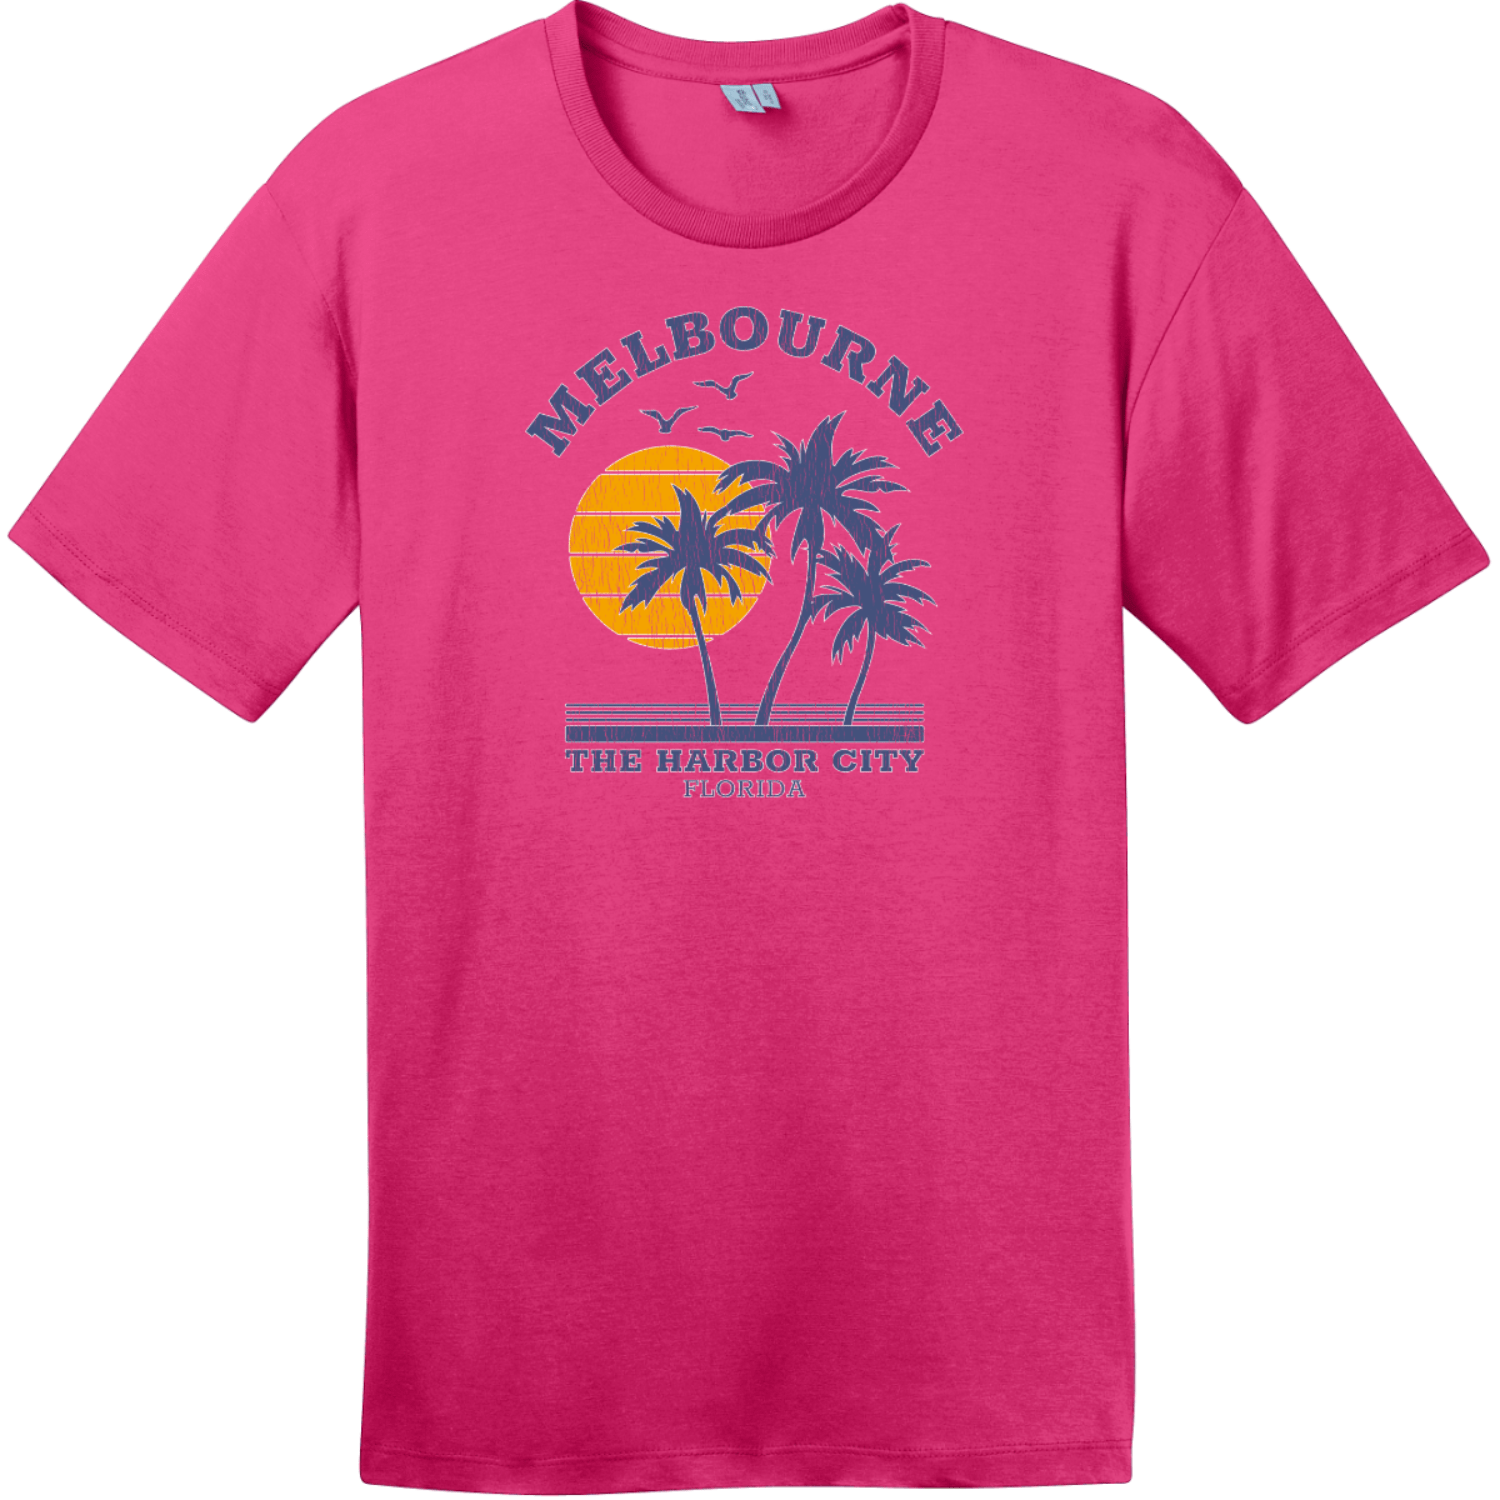 Melbourne Florida The Harbor City Vintage T-Shirt Dark Fuchsia District Perfect Weight Tee DT104